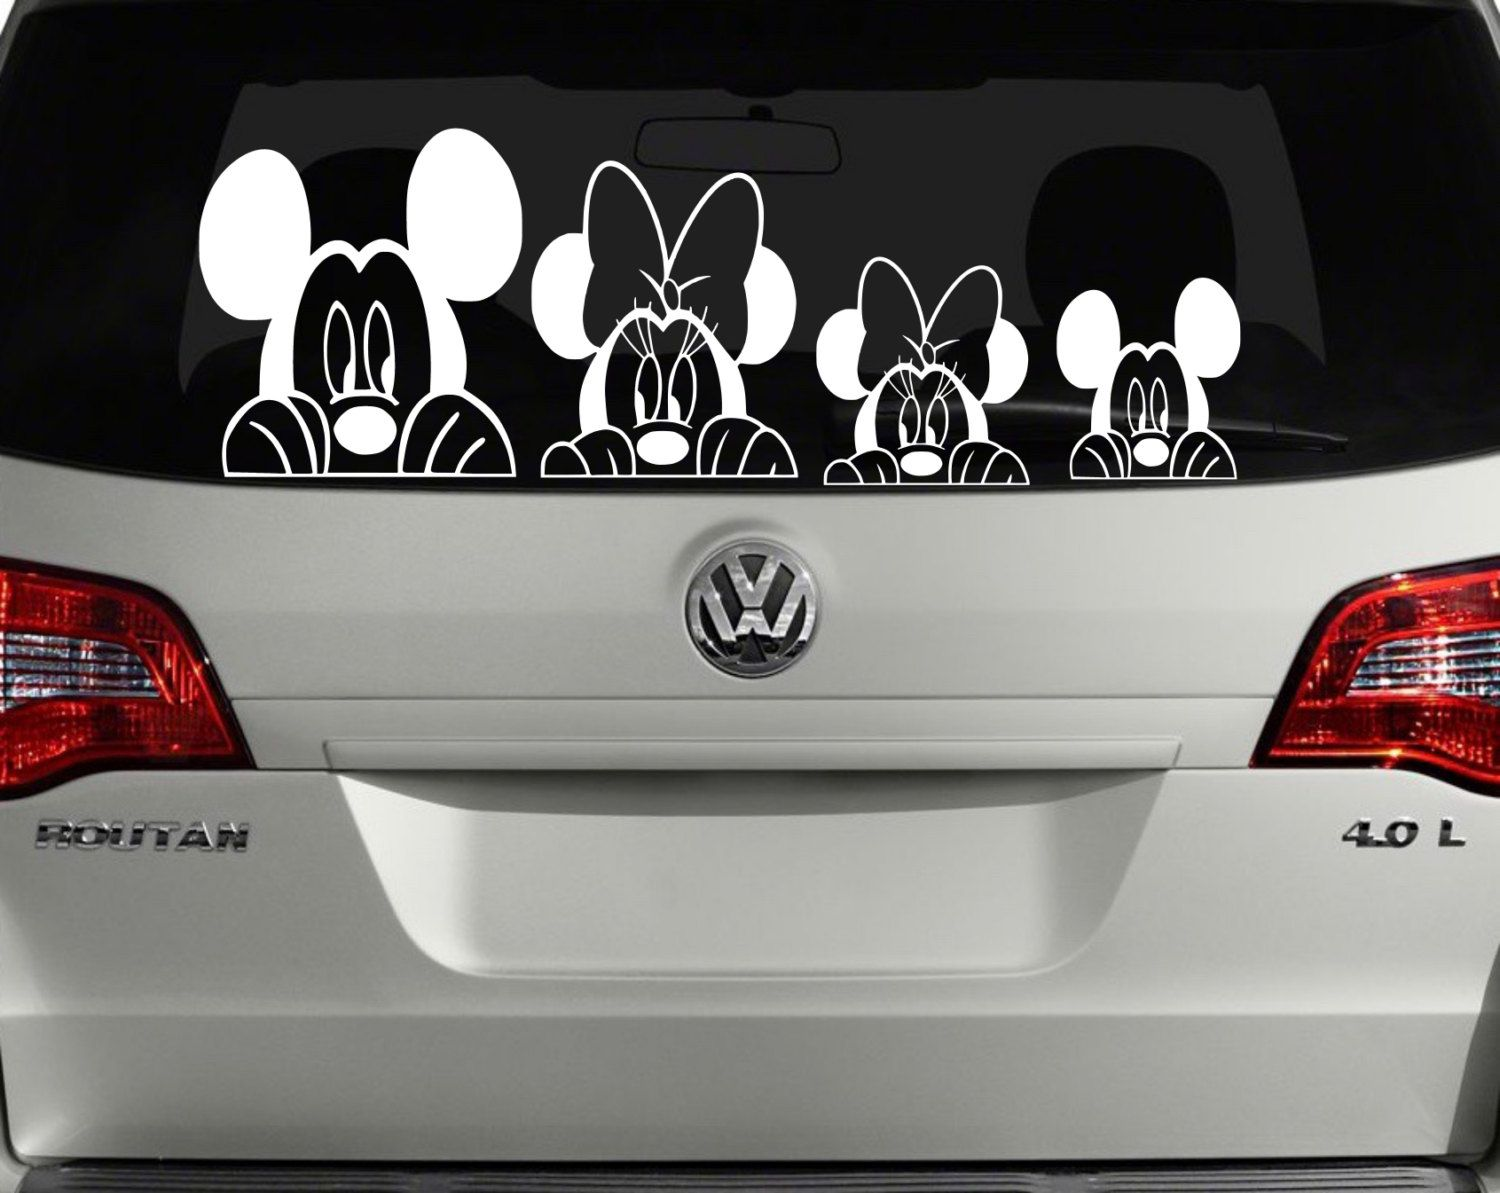 Mickey mouse minnie mouse peek a boo family daughter boy girl son baby peeking vinyl car decal mac book sticker laptop by kgdesigns16 on etsy